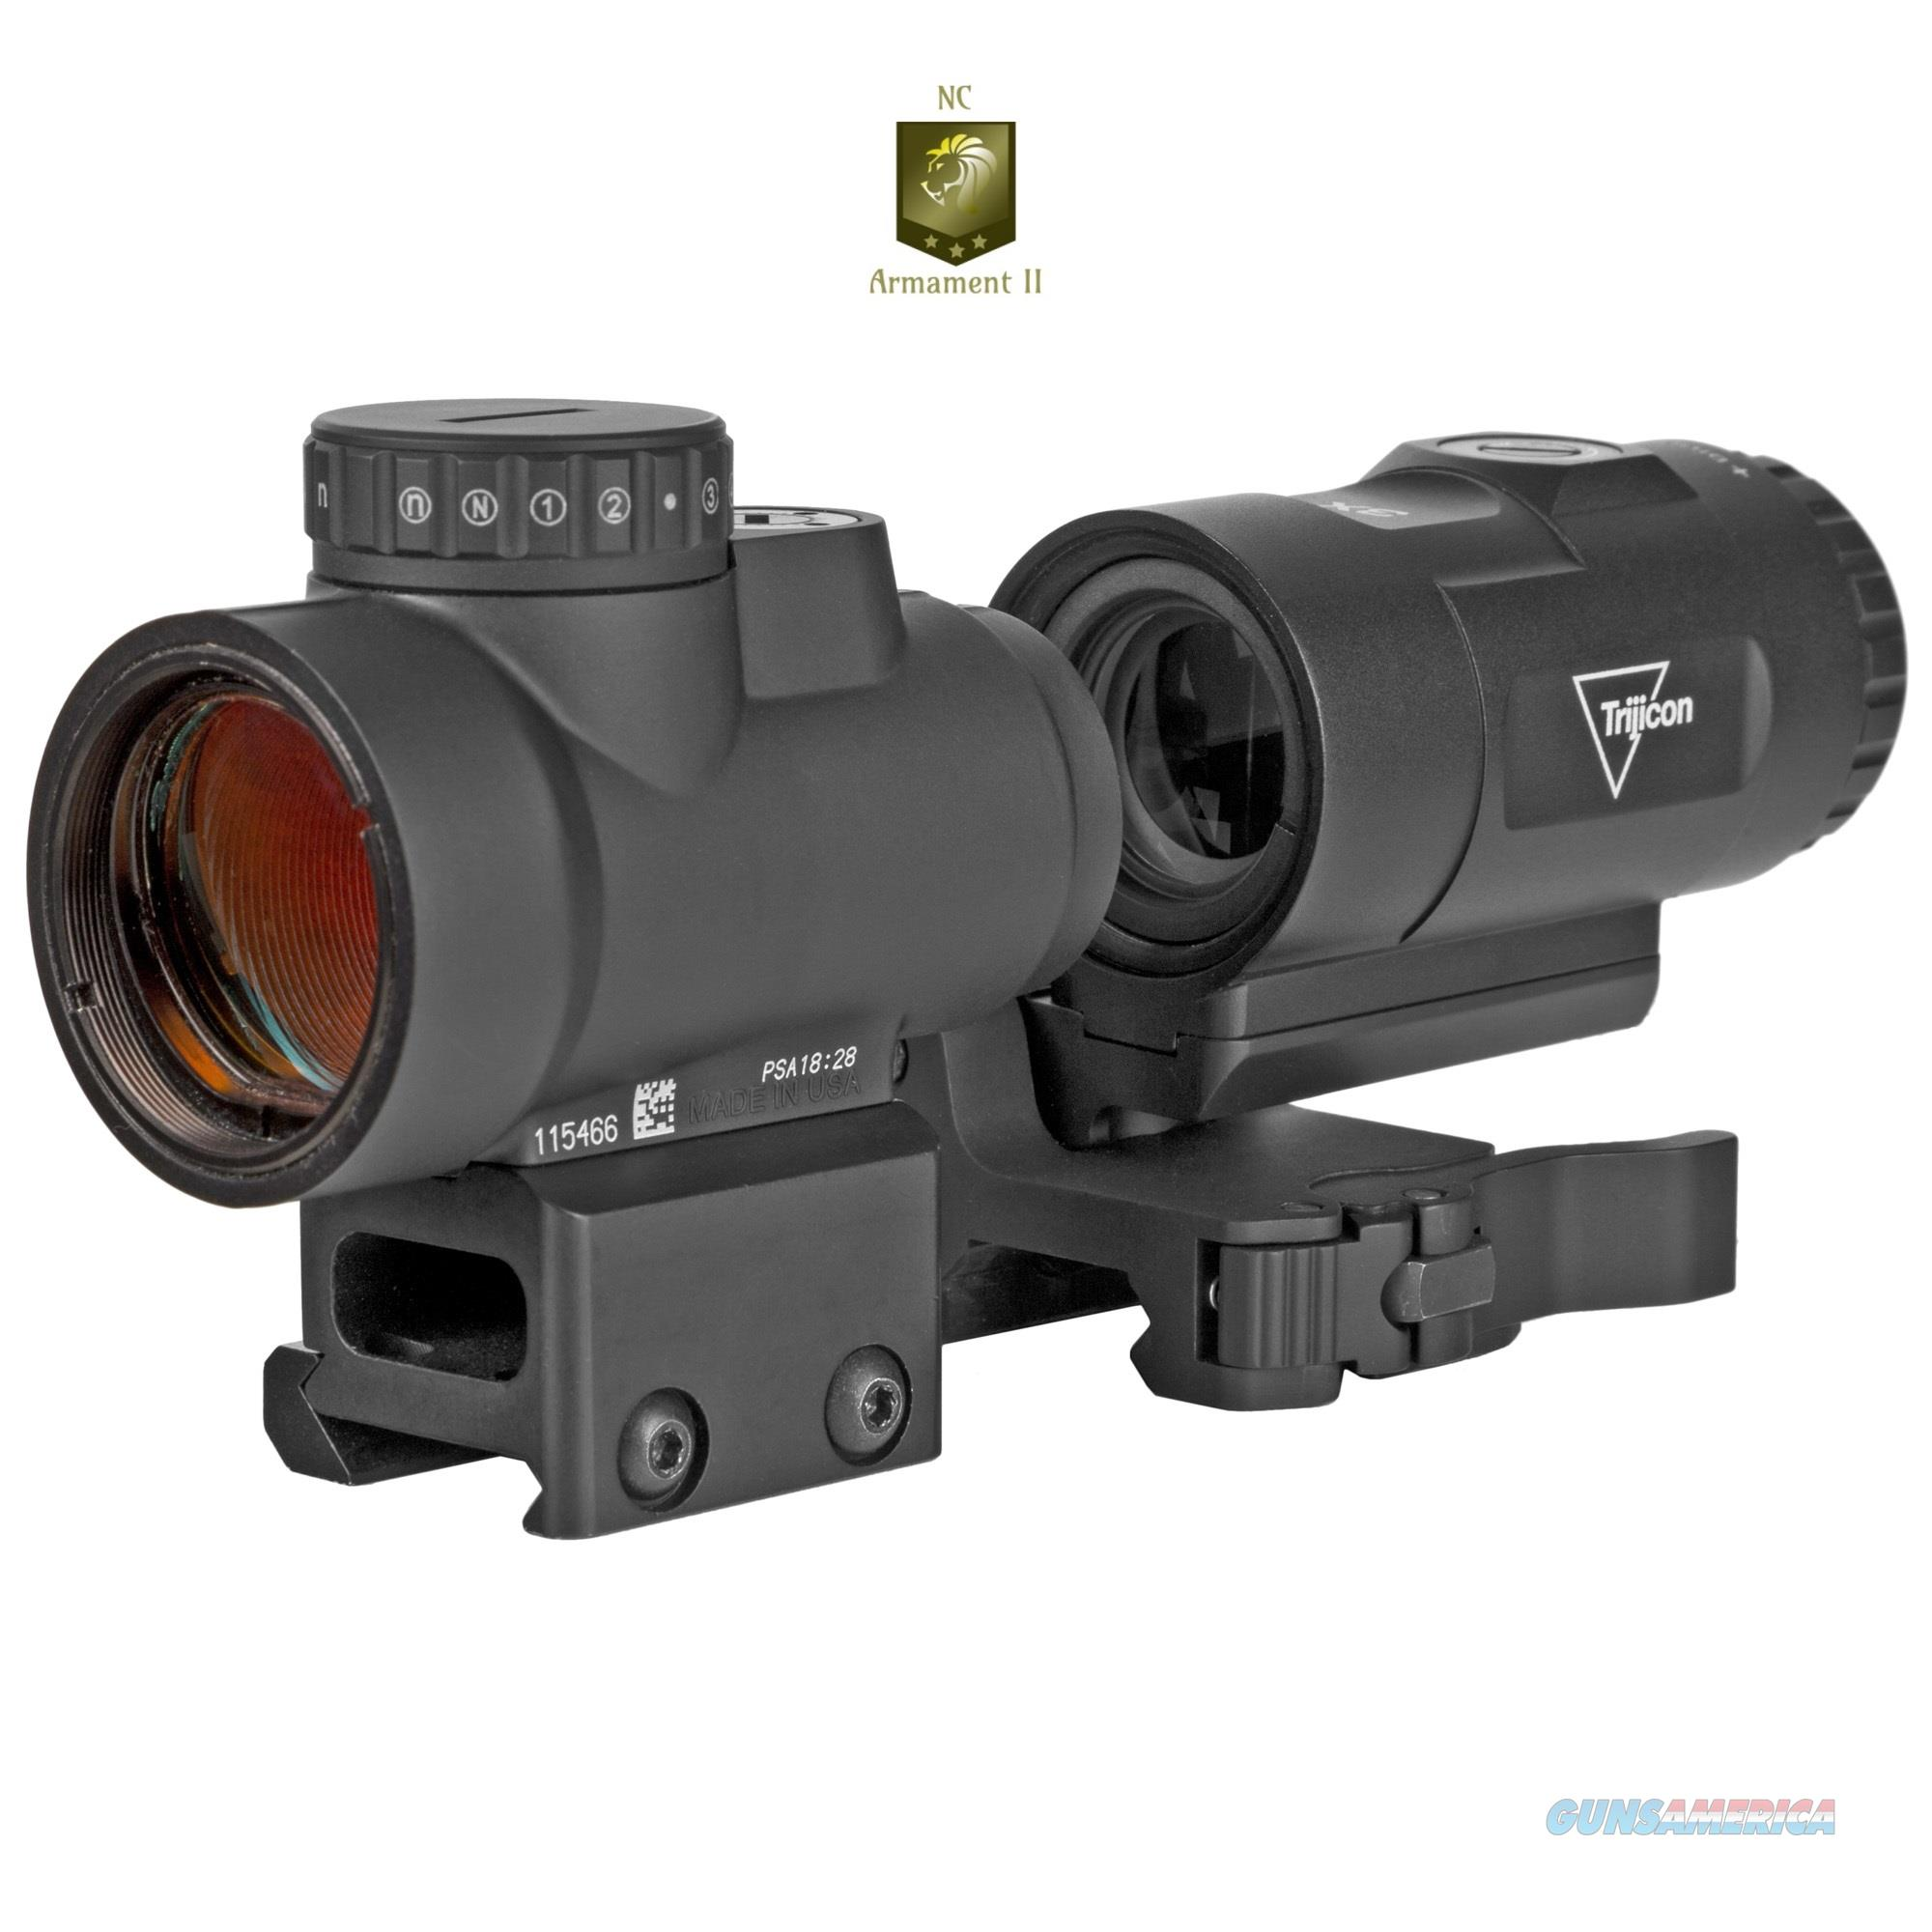 Trijicon MRO HD Red Dot 1X25 68MOA With 3X Magnifier  Non-Guns > Scopes/Mounts/Rings & Optics > Tactical Scopes > Red Dot